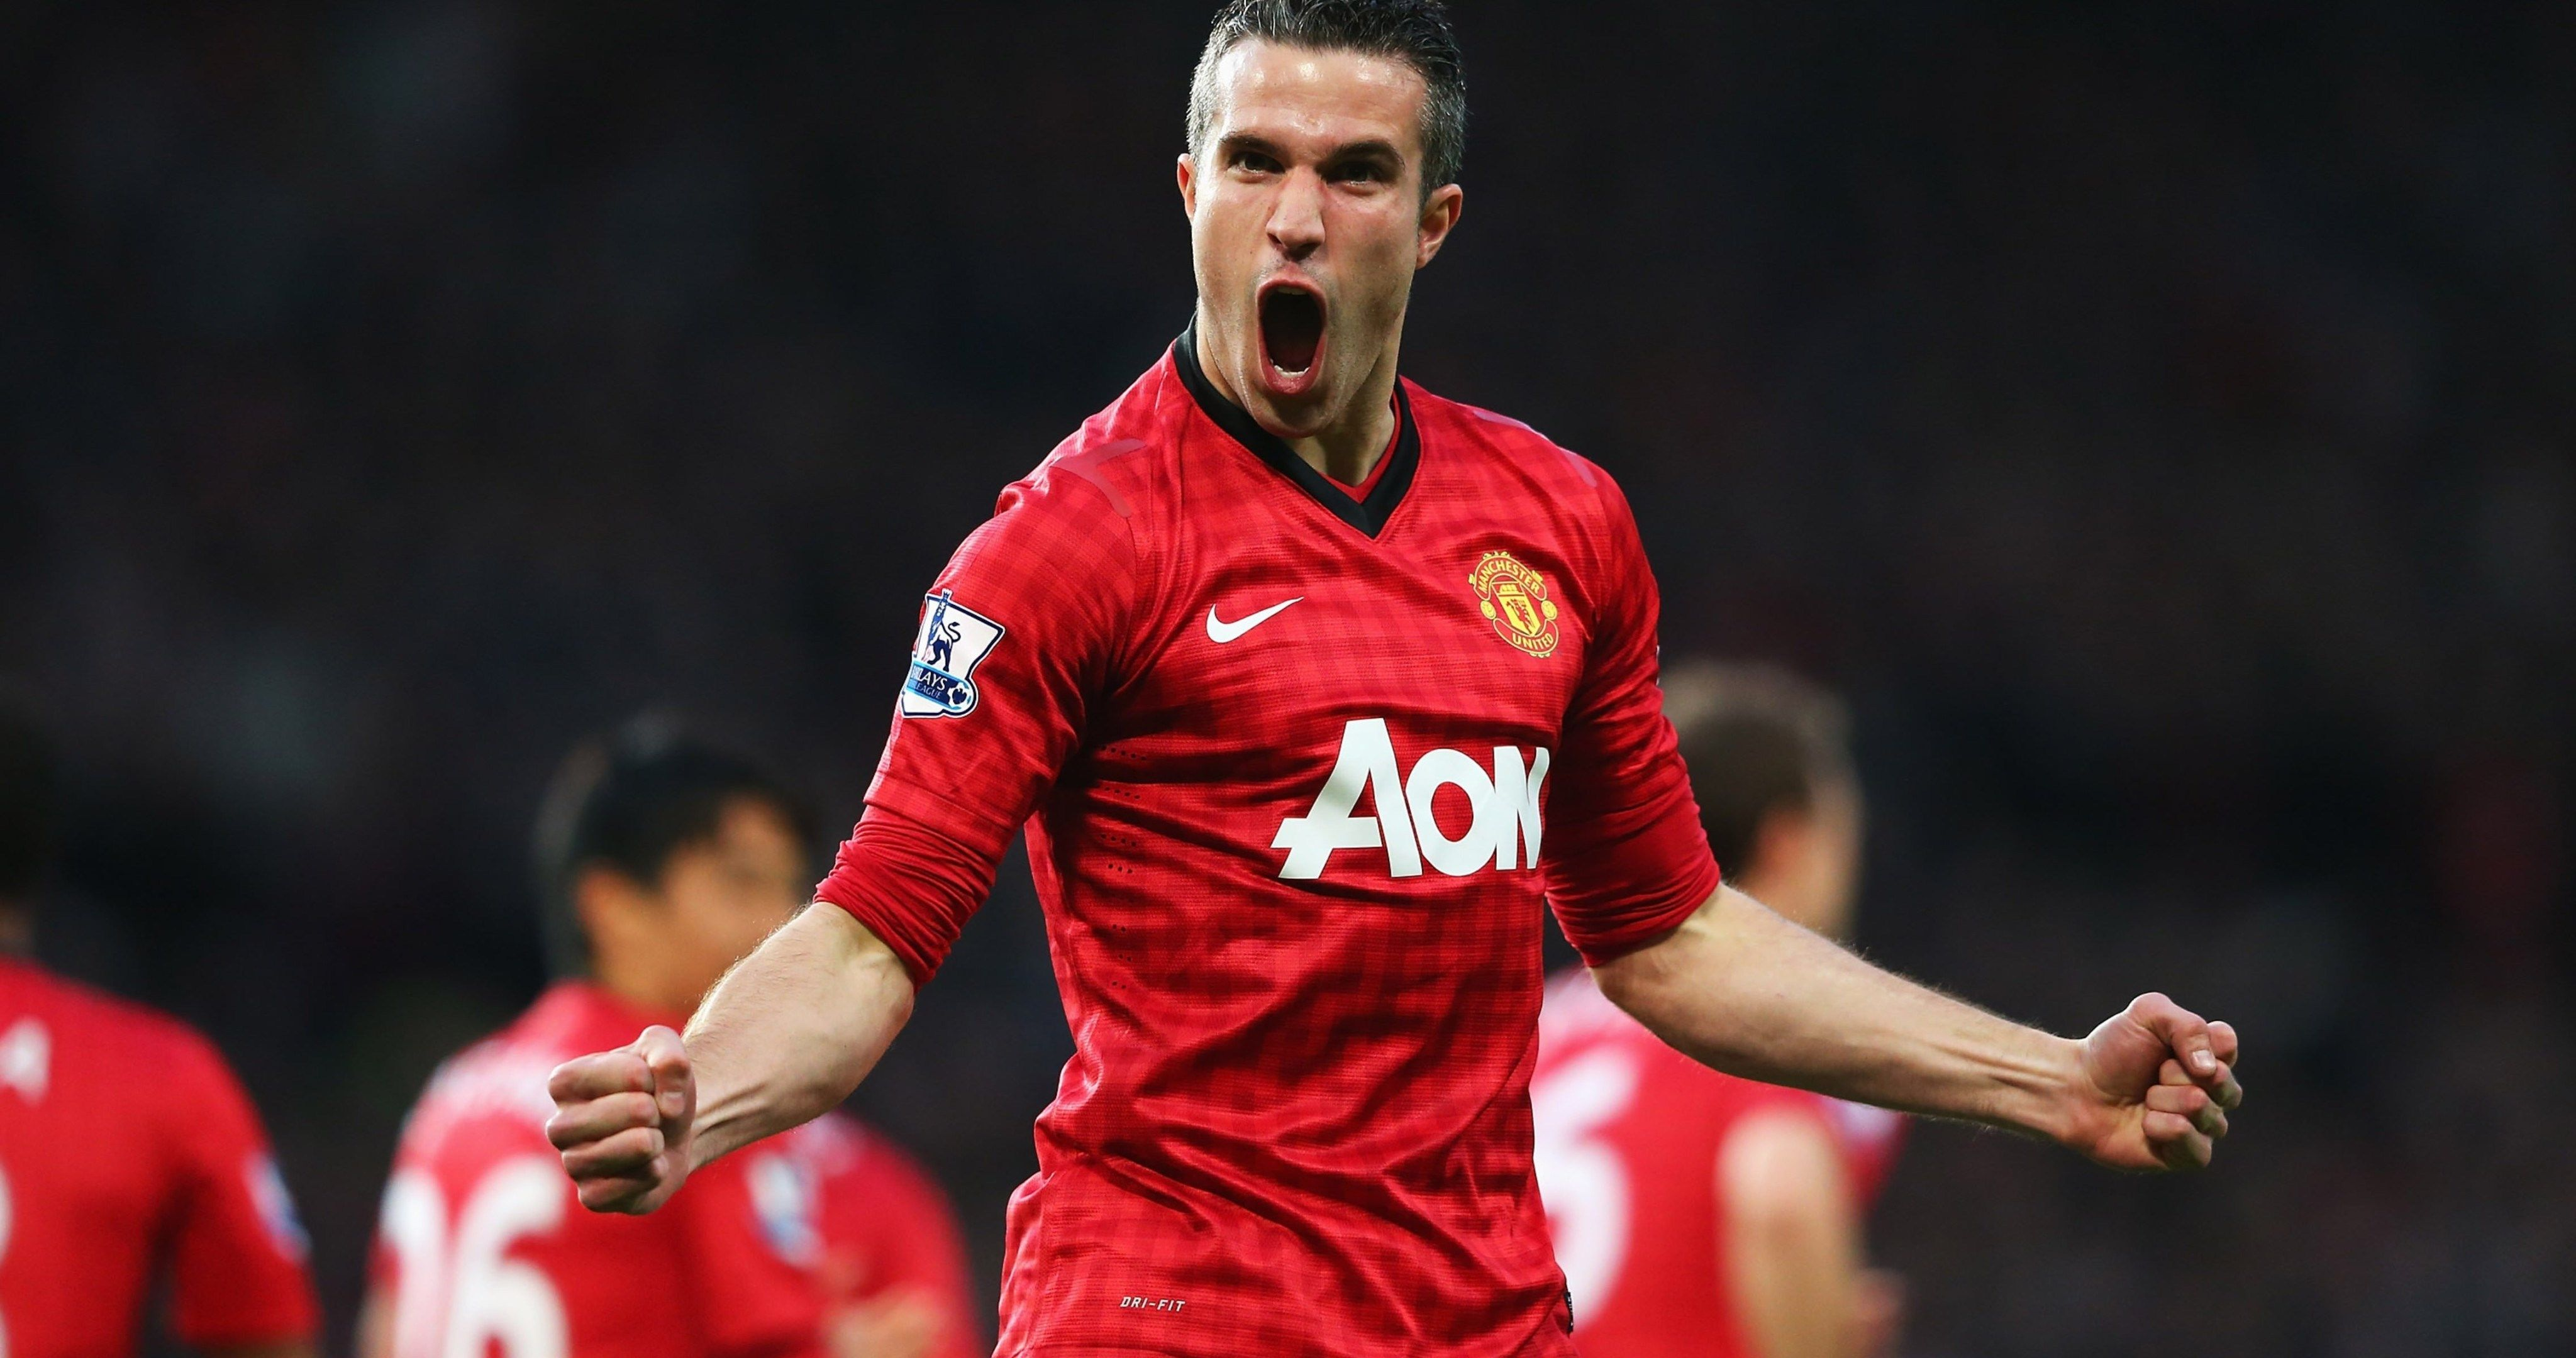 robin van persie manchester united 4k ultra hd wallpaper